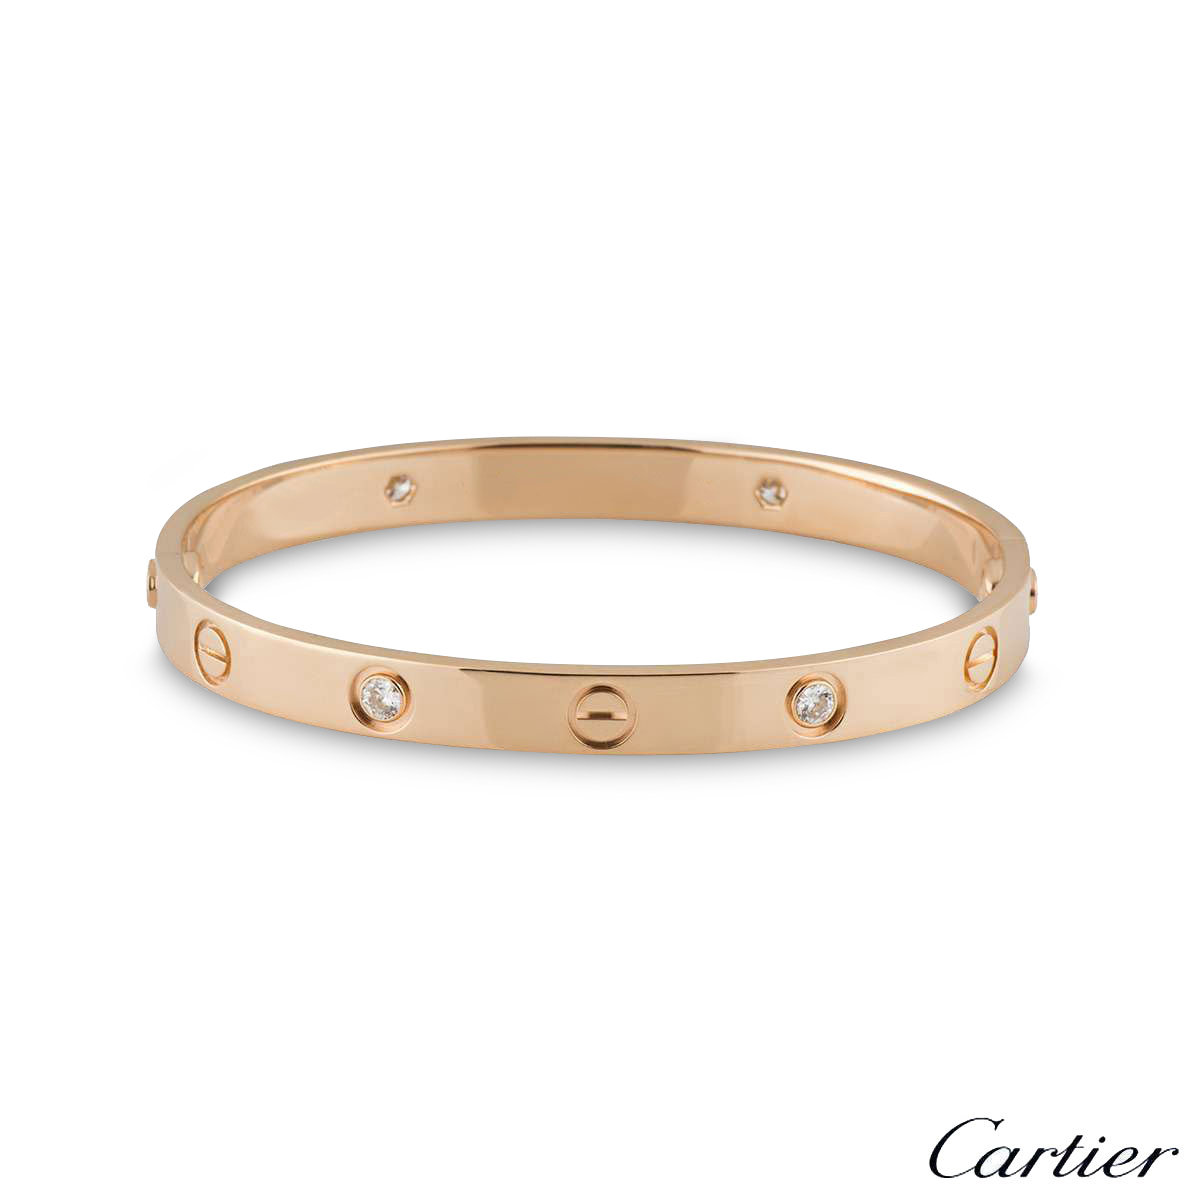 Cartier Rose Gold Half Diamond Love Bracelet Size 17 B6036017